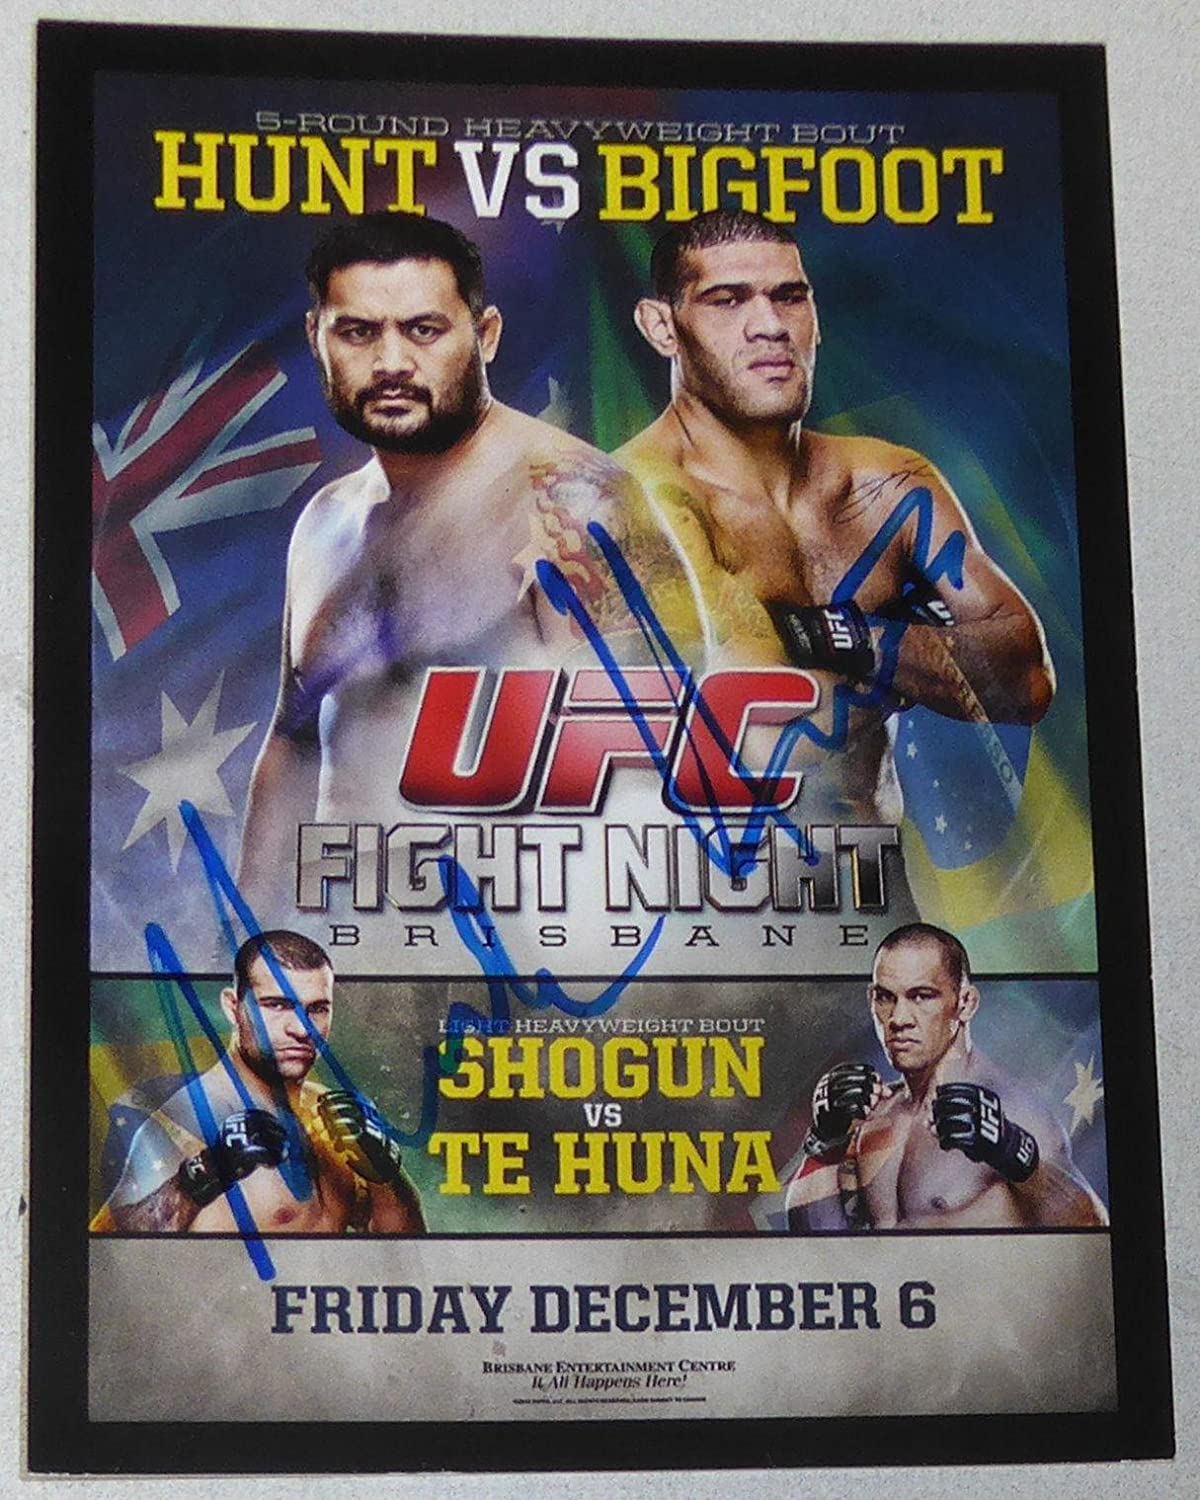 Mark Hunt Signed 2015 Topps Champions Ufc Fight Night Bigfoot Silva Poster Card Autographed Ufc Event Poster At Amazon S Sports Collectibles Store